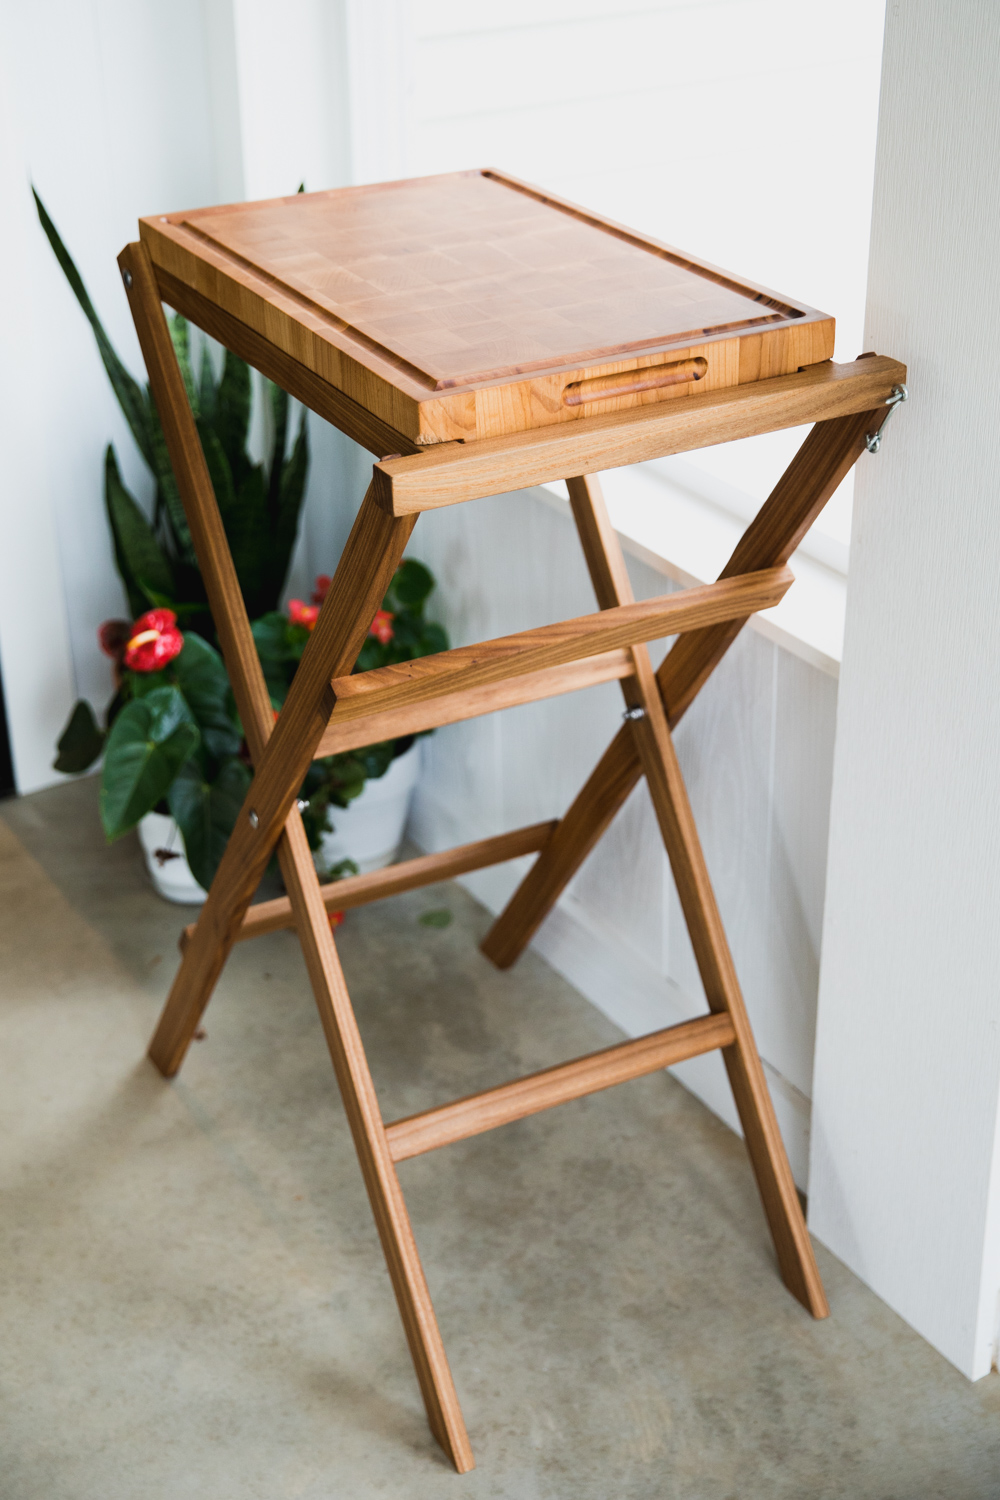 BIG-TOOTH-CO_end_grain_cutting_board_with_stand (5 of 27).jpg